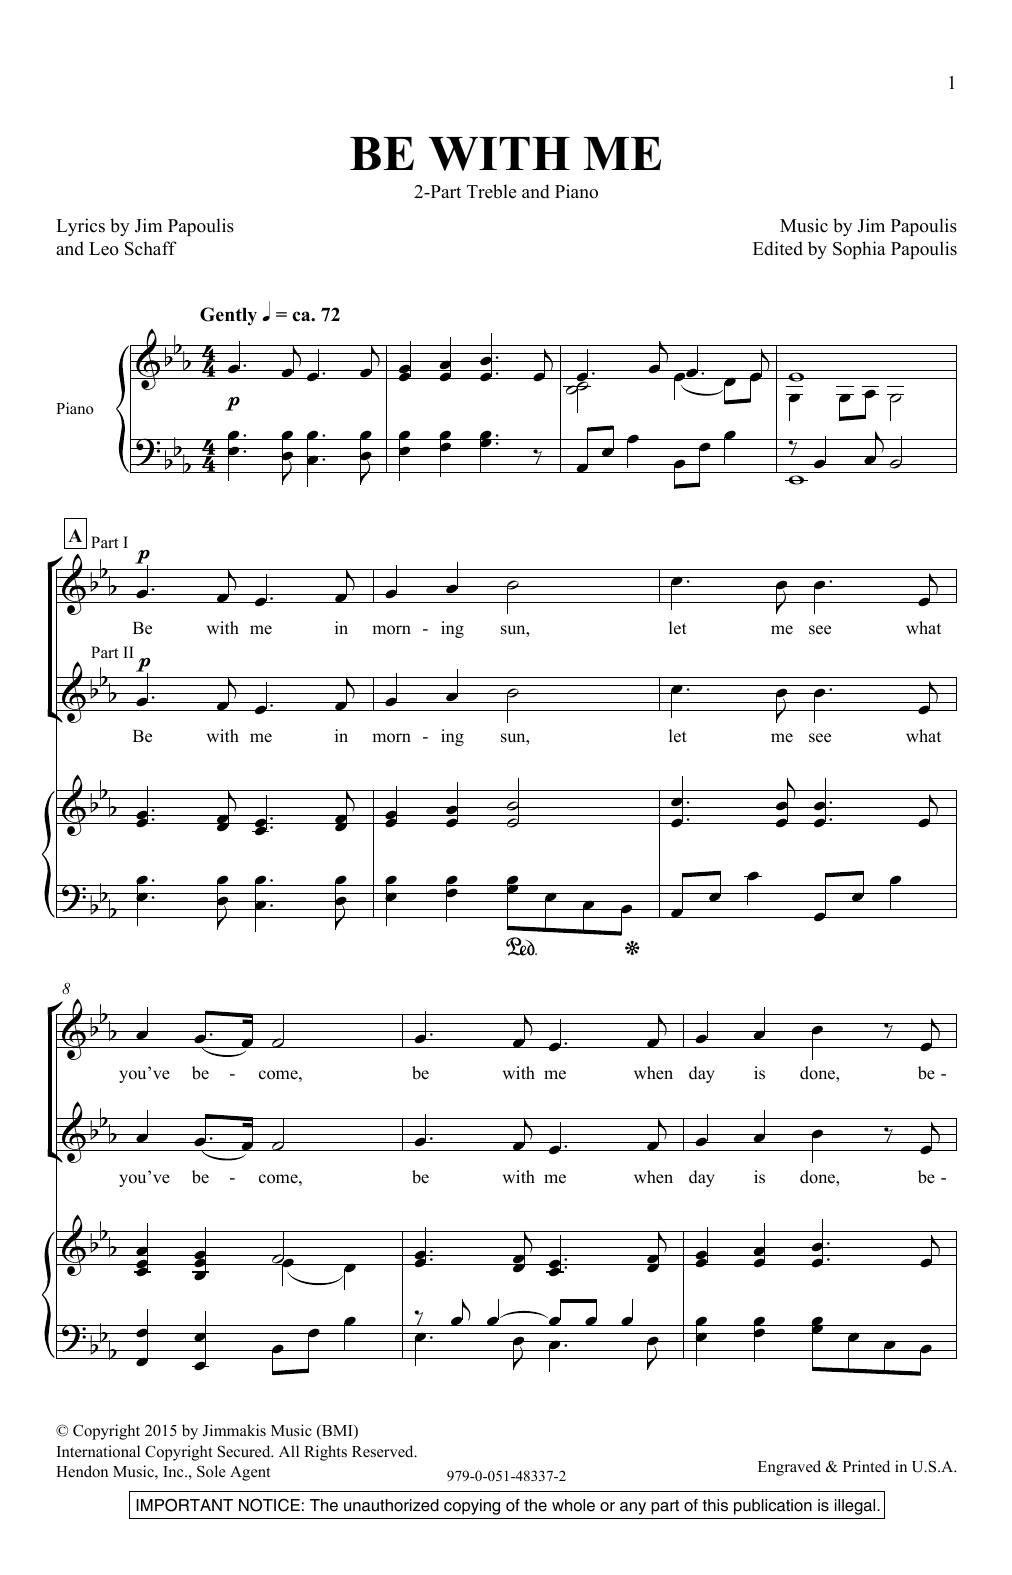 Jim Papoulis Be With Me sheet music notes and chords. Download Printable PDF.